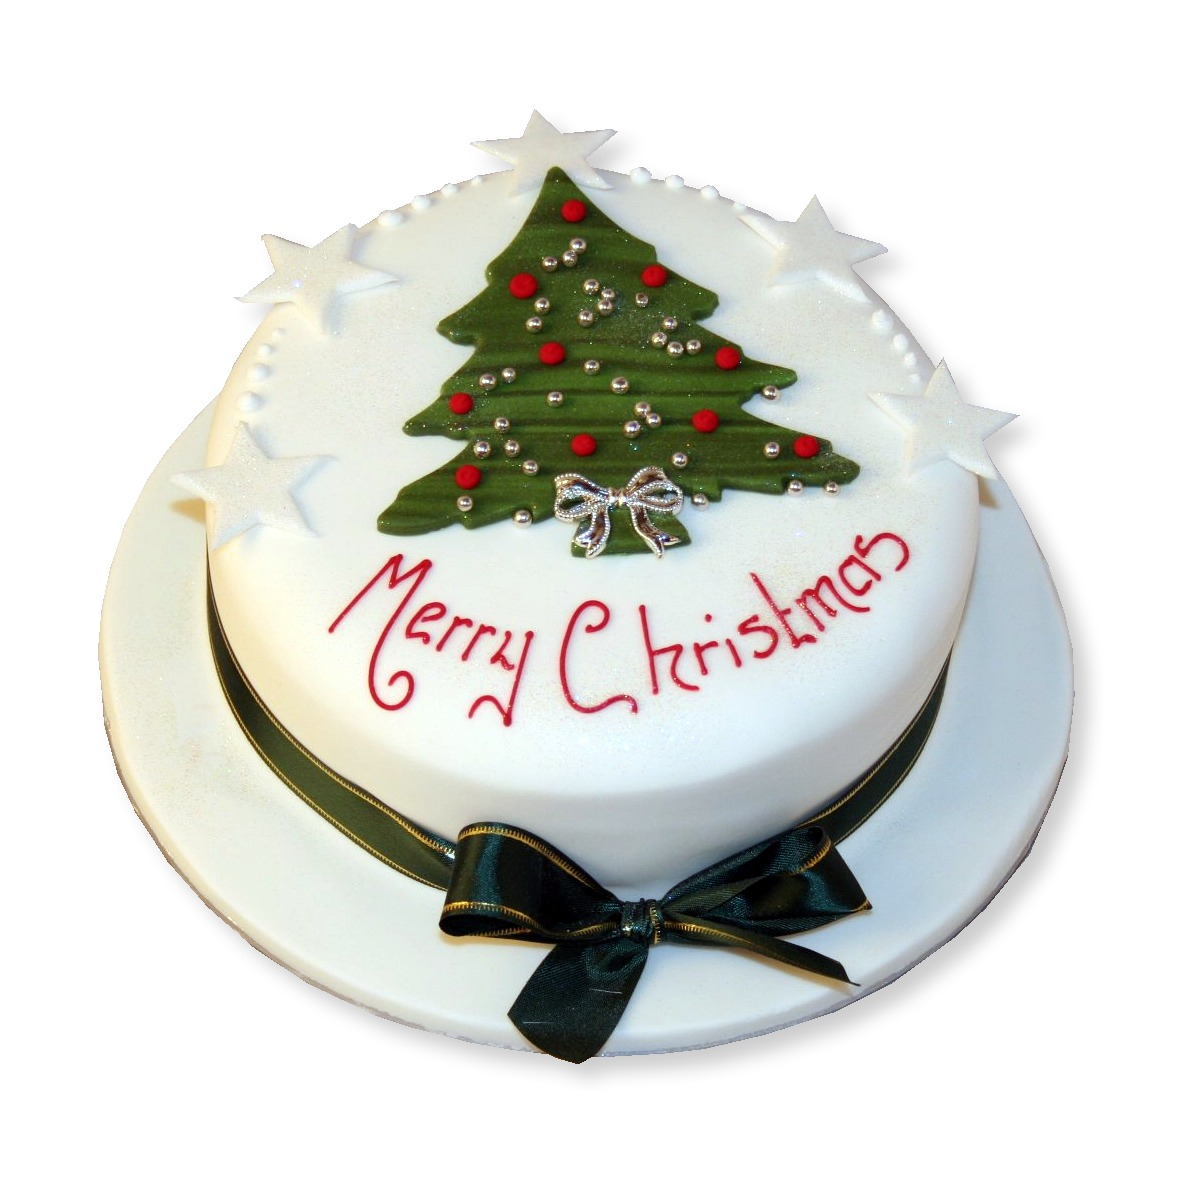 Christmas Cake Design 2018 : Christmas Tree cake   1.5kg Online cake delivery in ...